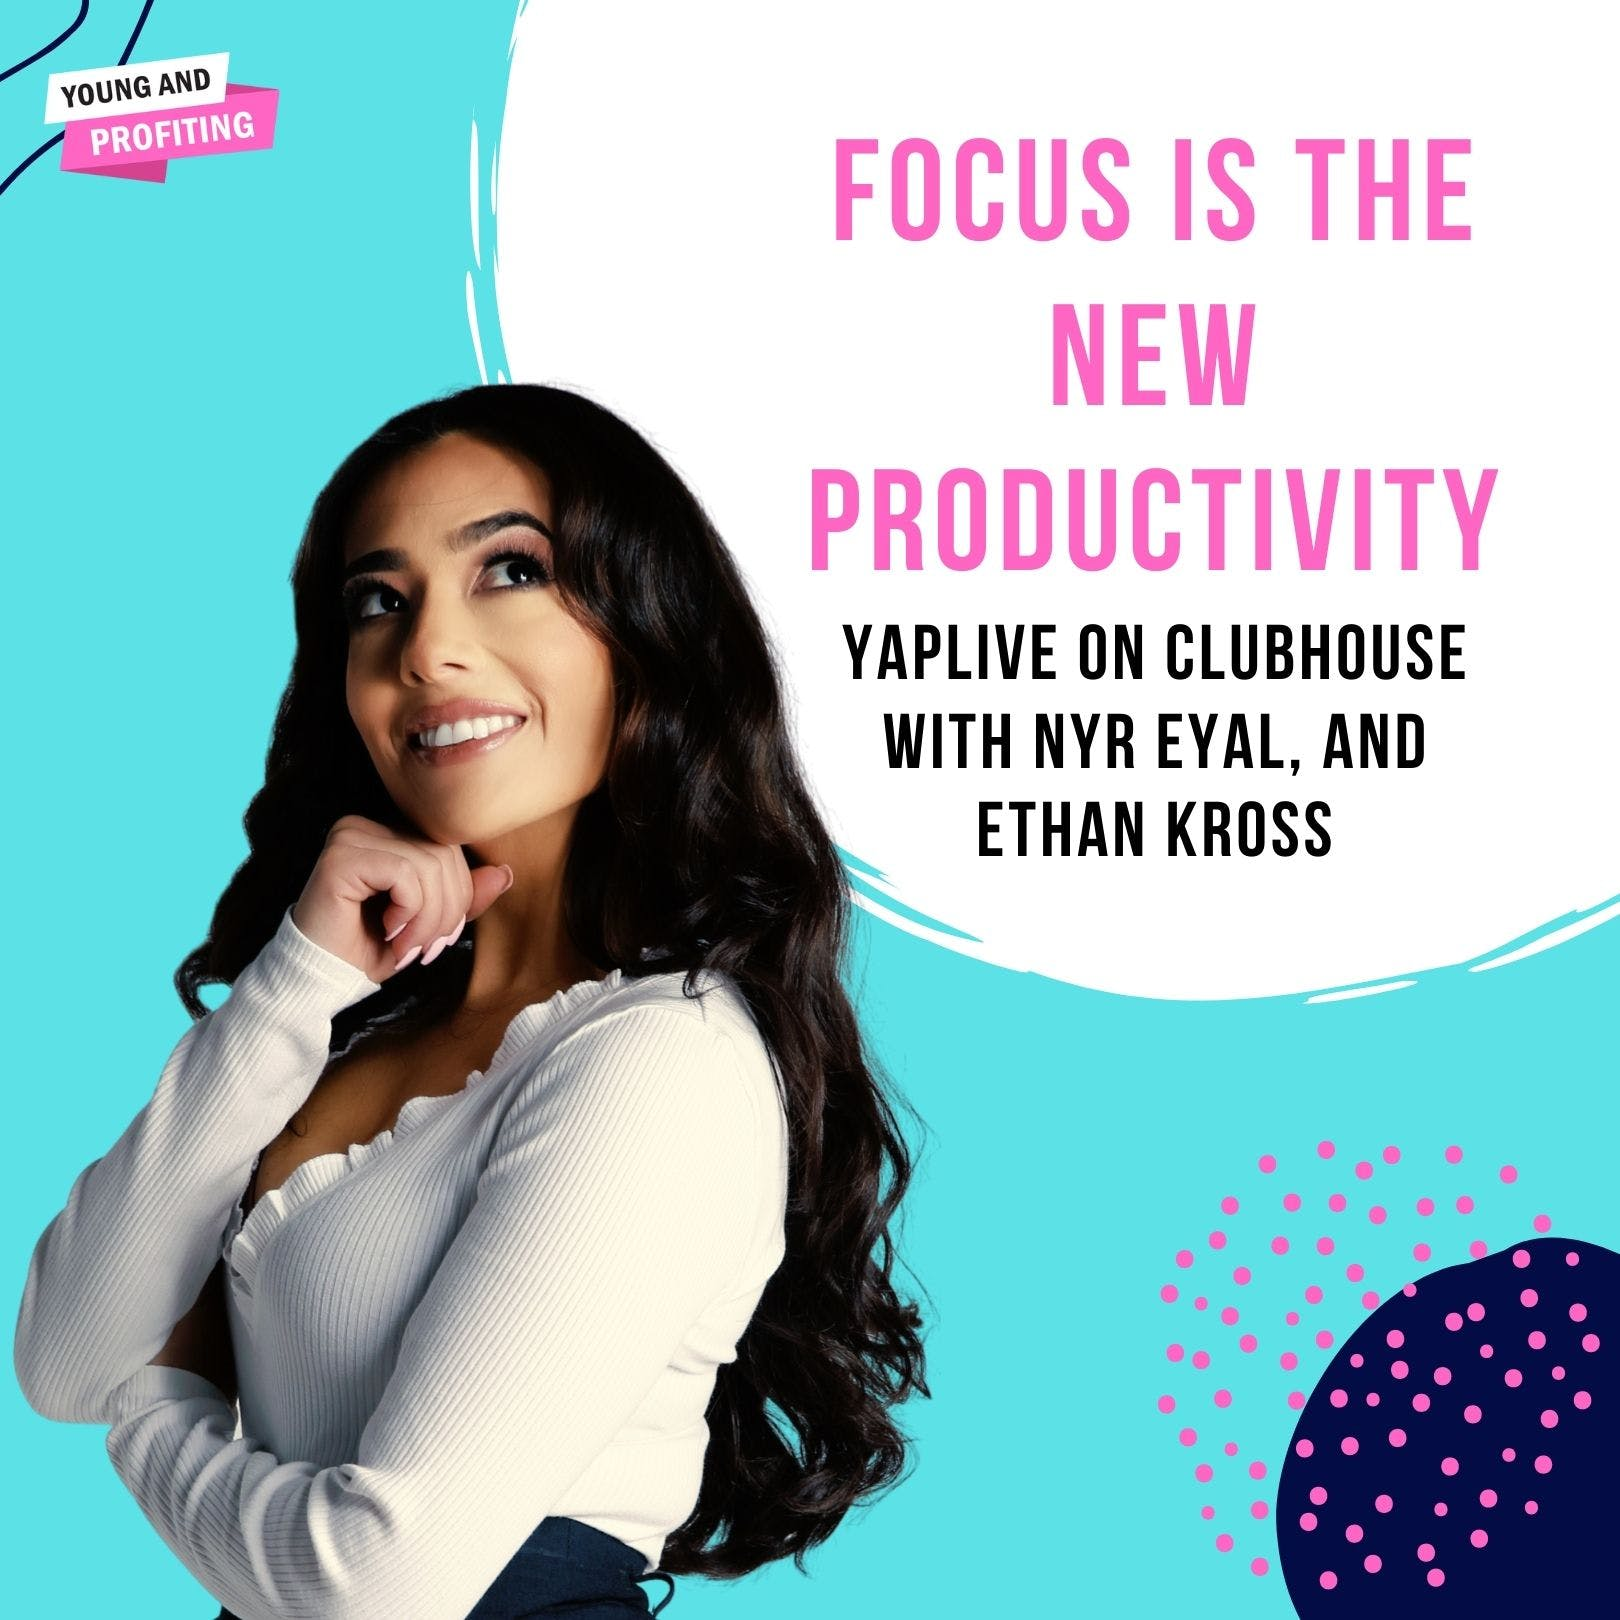 #YAPLive: Focus is the New Productivity with Nir Eyal and Ethan Kross on Clubhouse